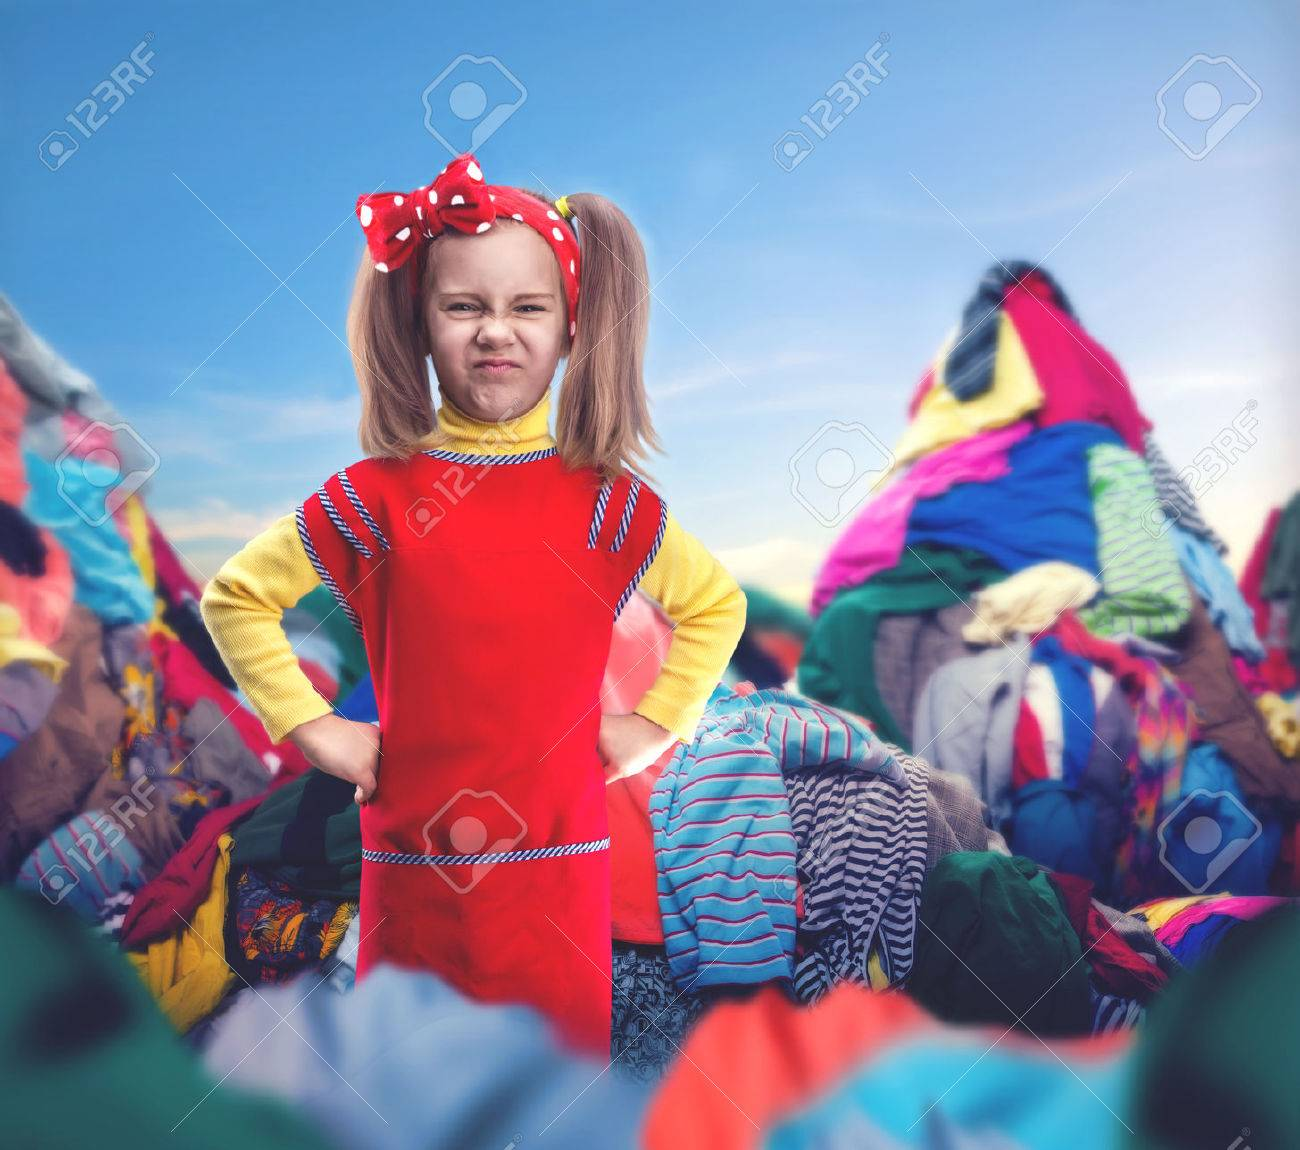 Little girl with her hands on hips stands among heaps of clothes Stock Photo - 44113244